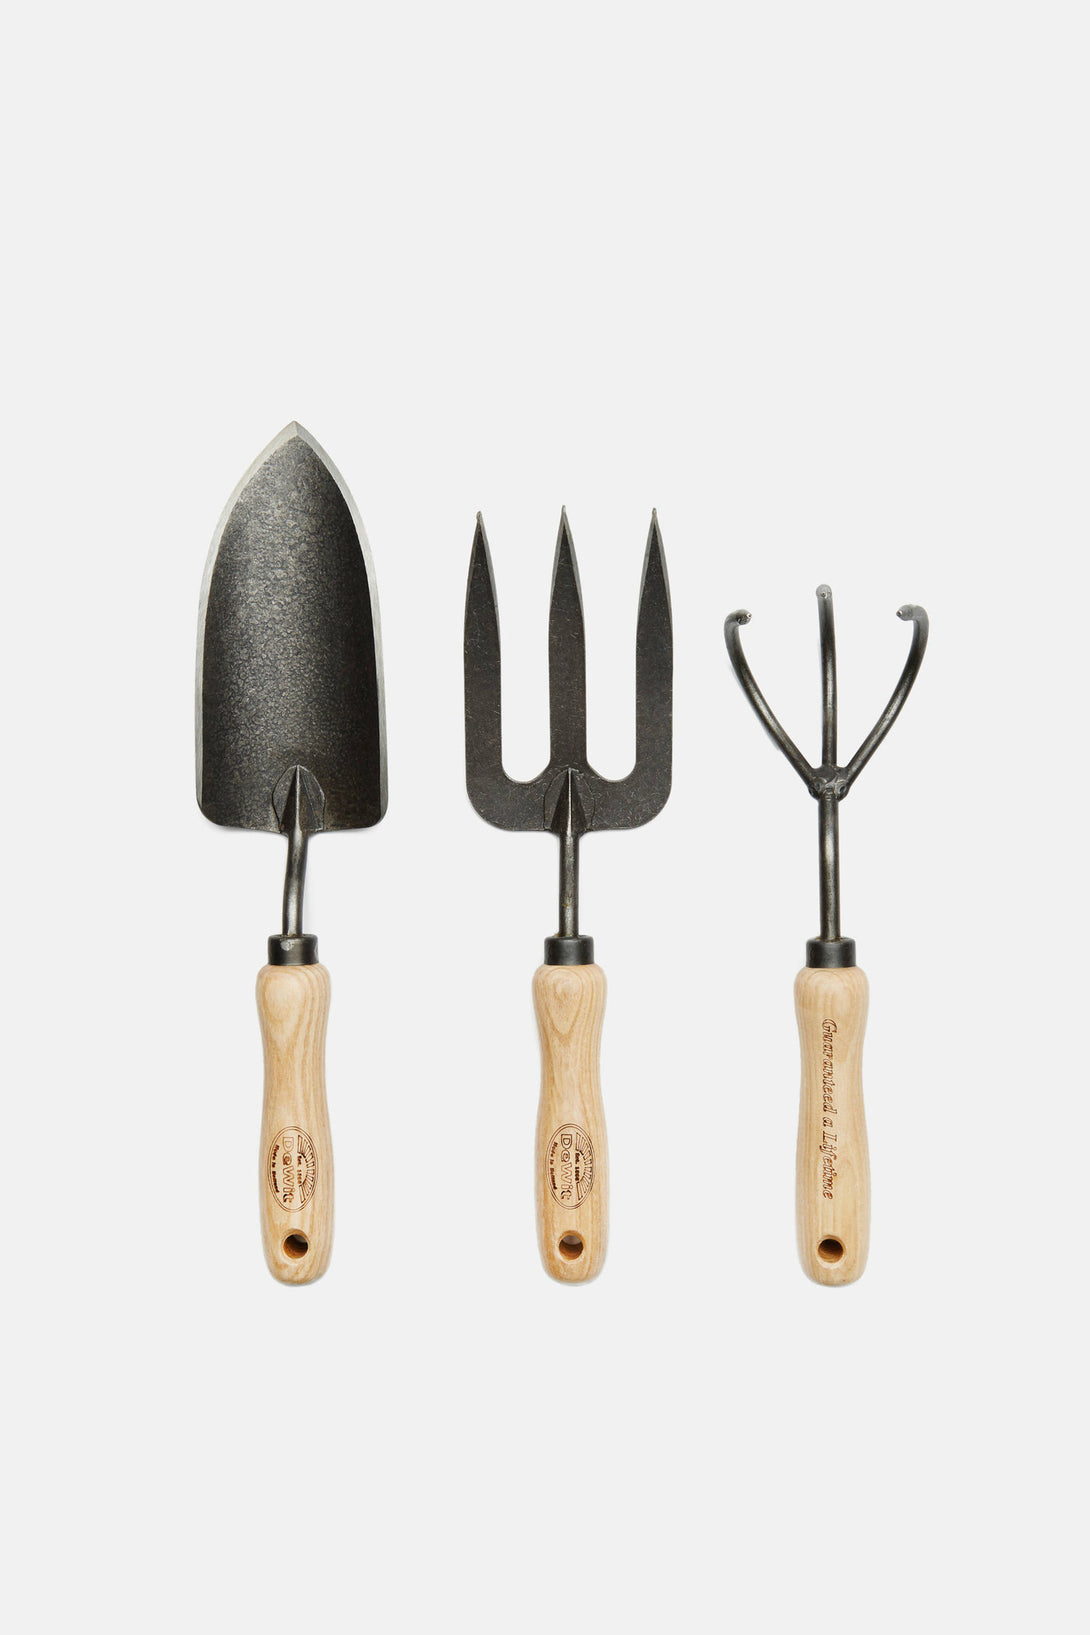 3-Piece Hand Forged Dutch Gardening Tool Set